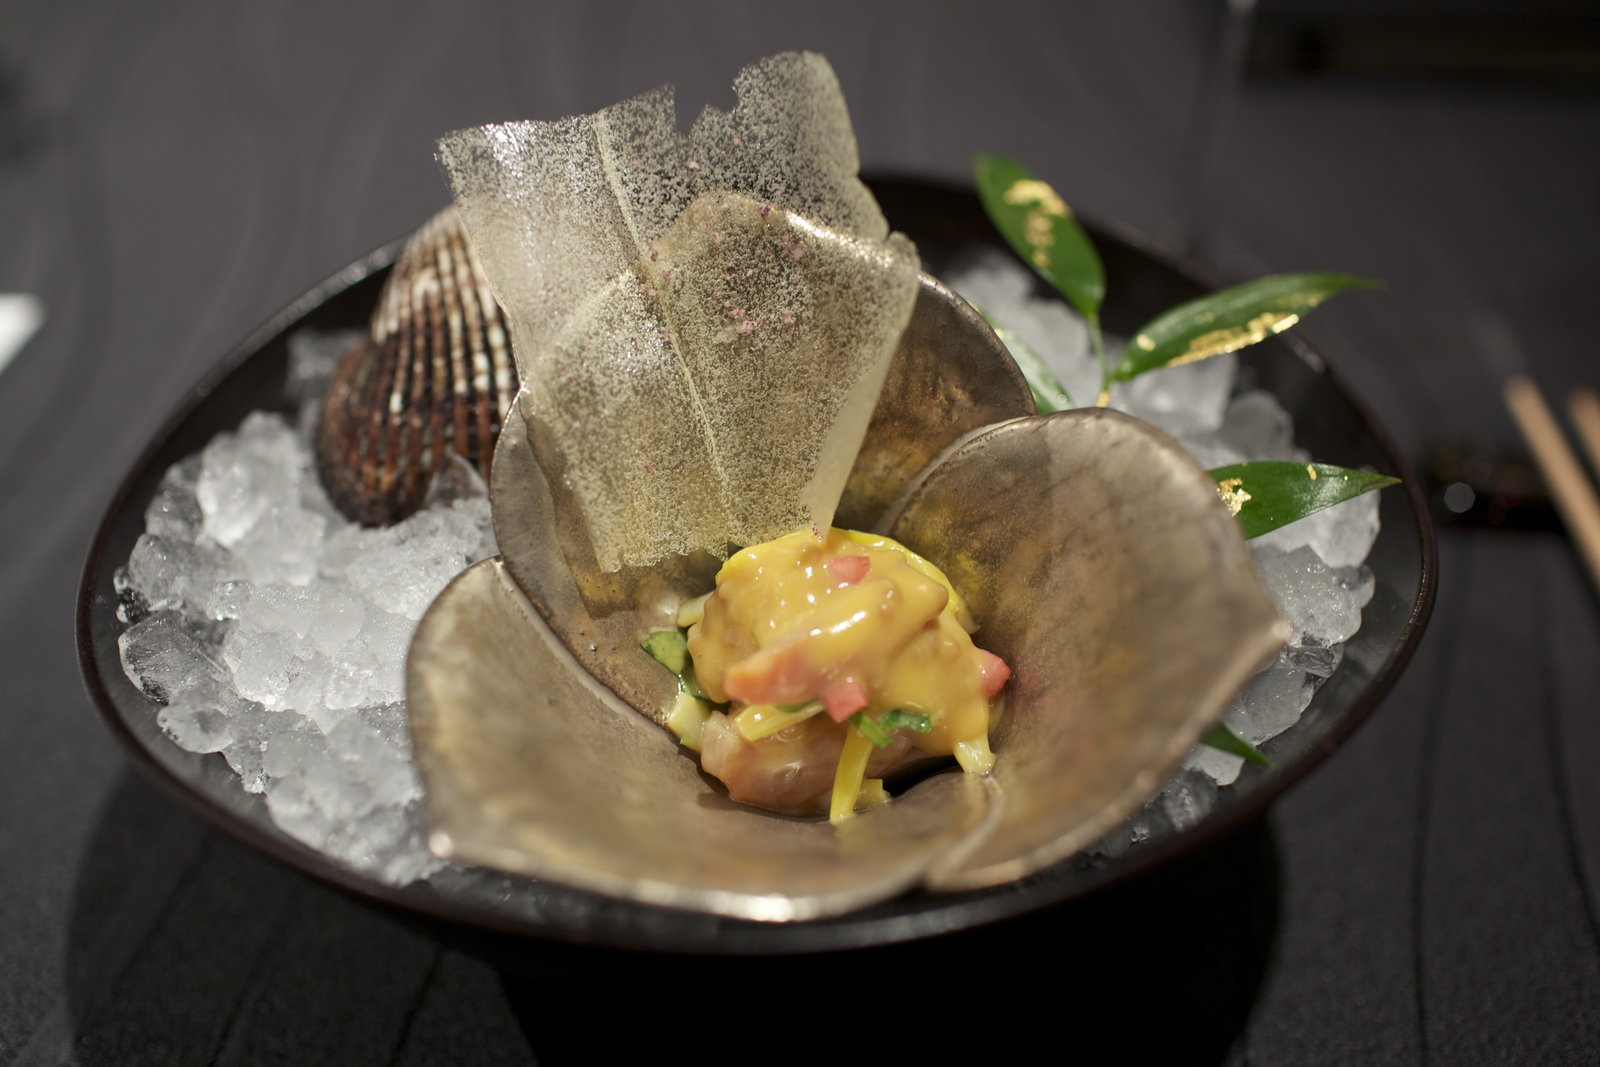 RyuGin - Ankimo, monkfish liver, seared with ark shell clam and winter vegetable in apple vinegar, miso, and mustard